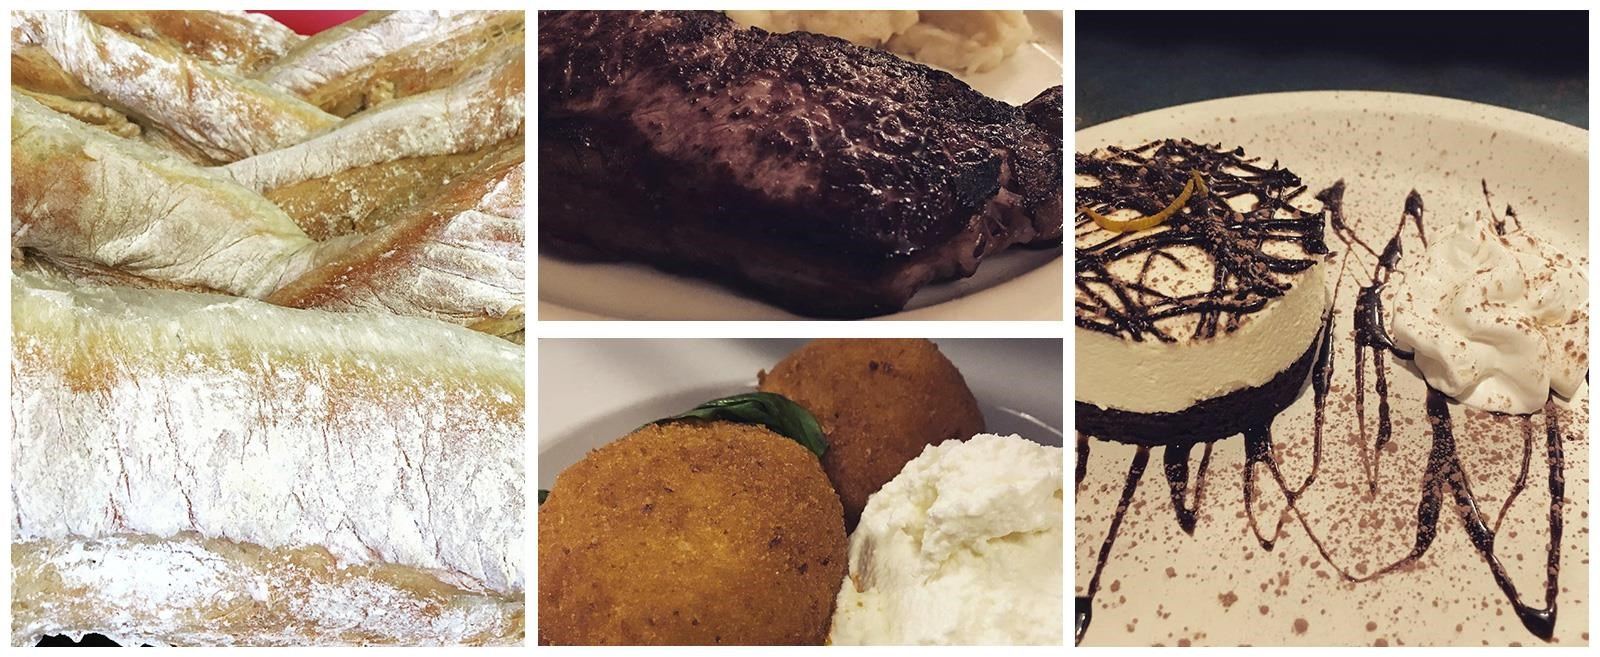 Dom and Vinnies | Yonkers NY Italian Food Order Online